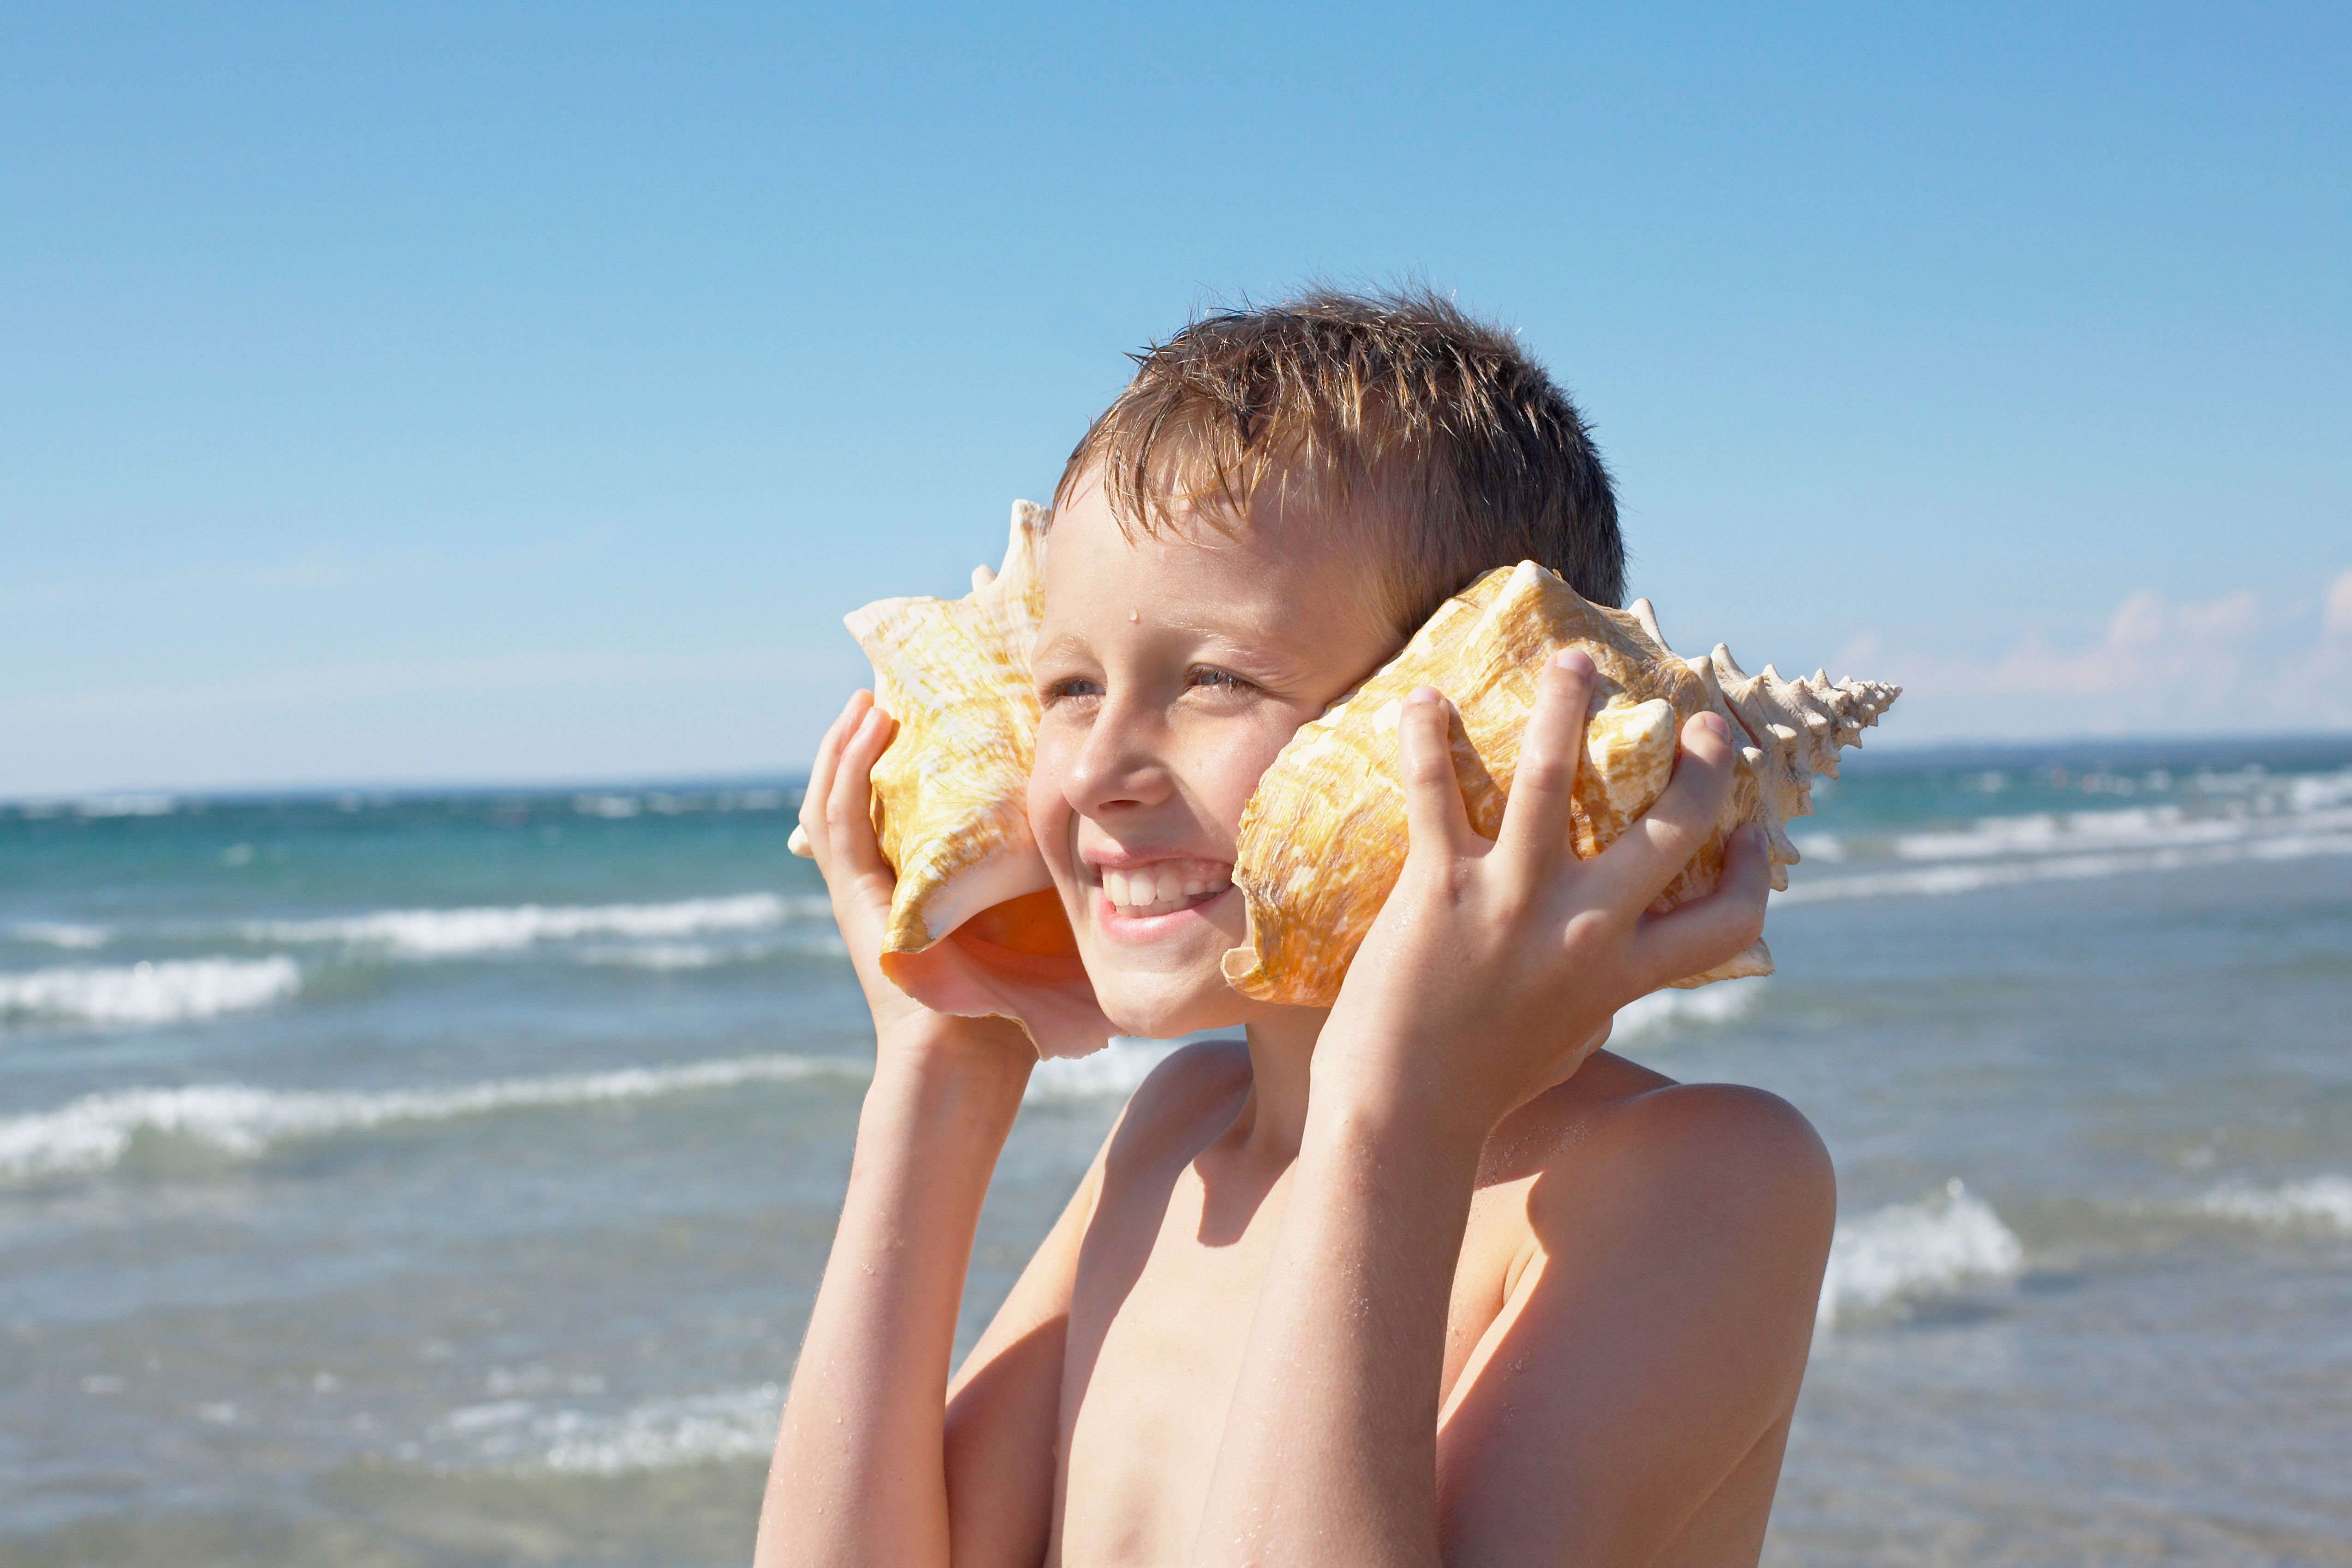 Boy Holding Seashells to His Ears, Elmvale, Ontario, Canada